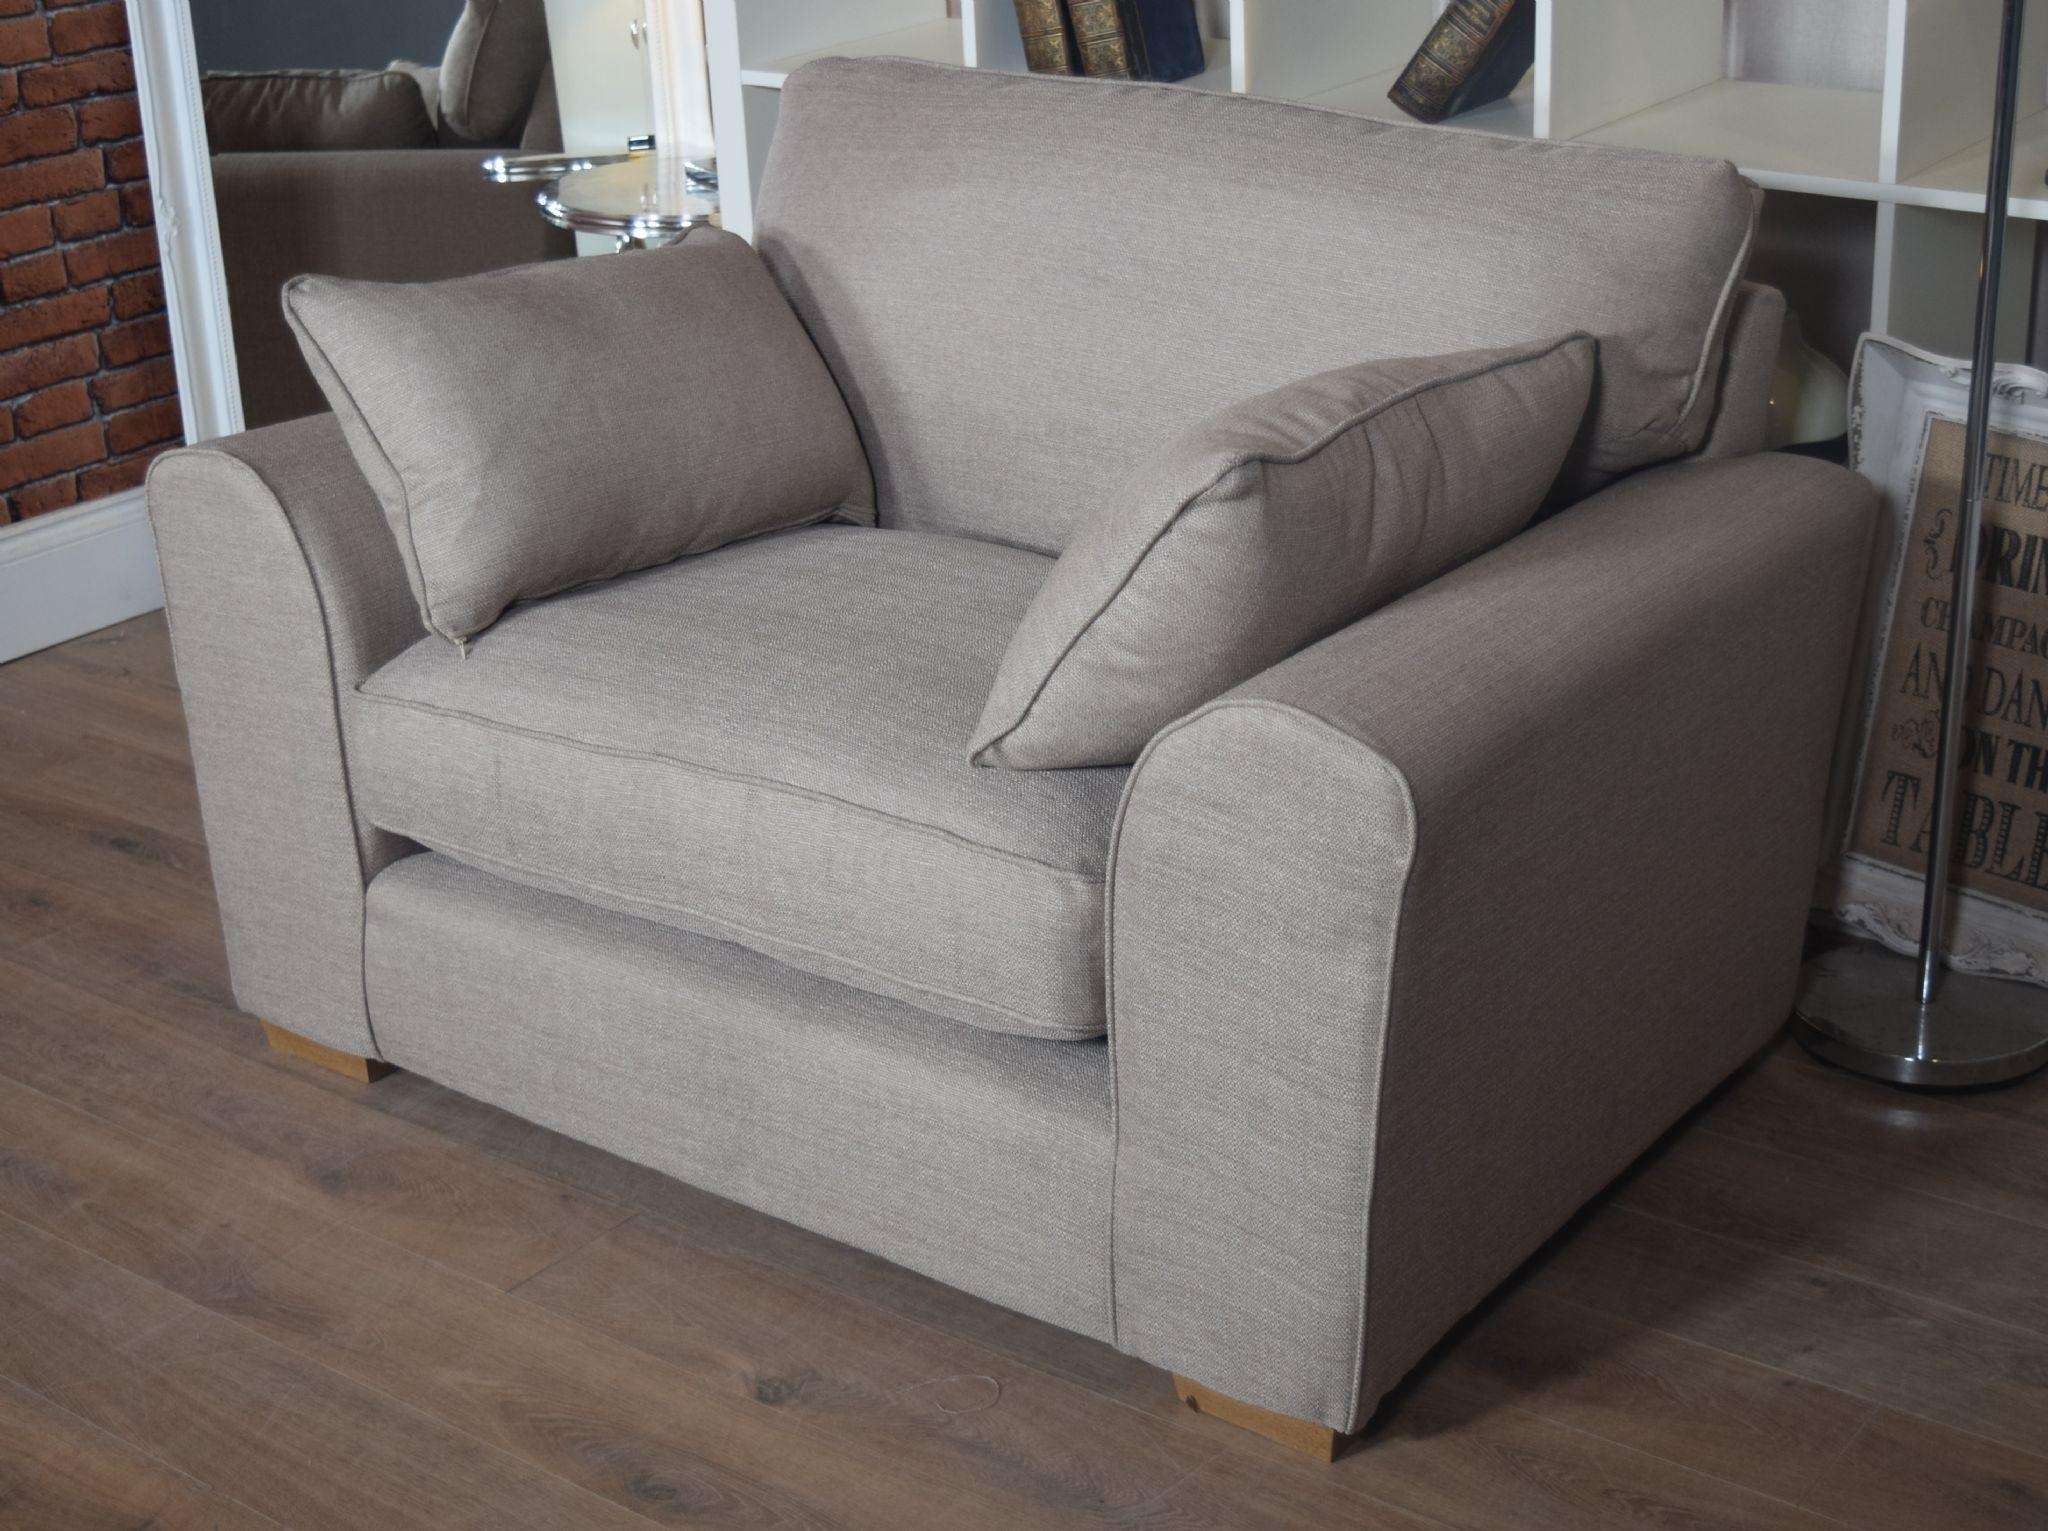 Set New Ashdown 3 Seater Sofa & Cuddle Chair Set – Beige Mink Throughout 3 Seater Sofa And Cuddle Chairs (Image 12 of 20)